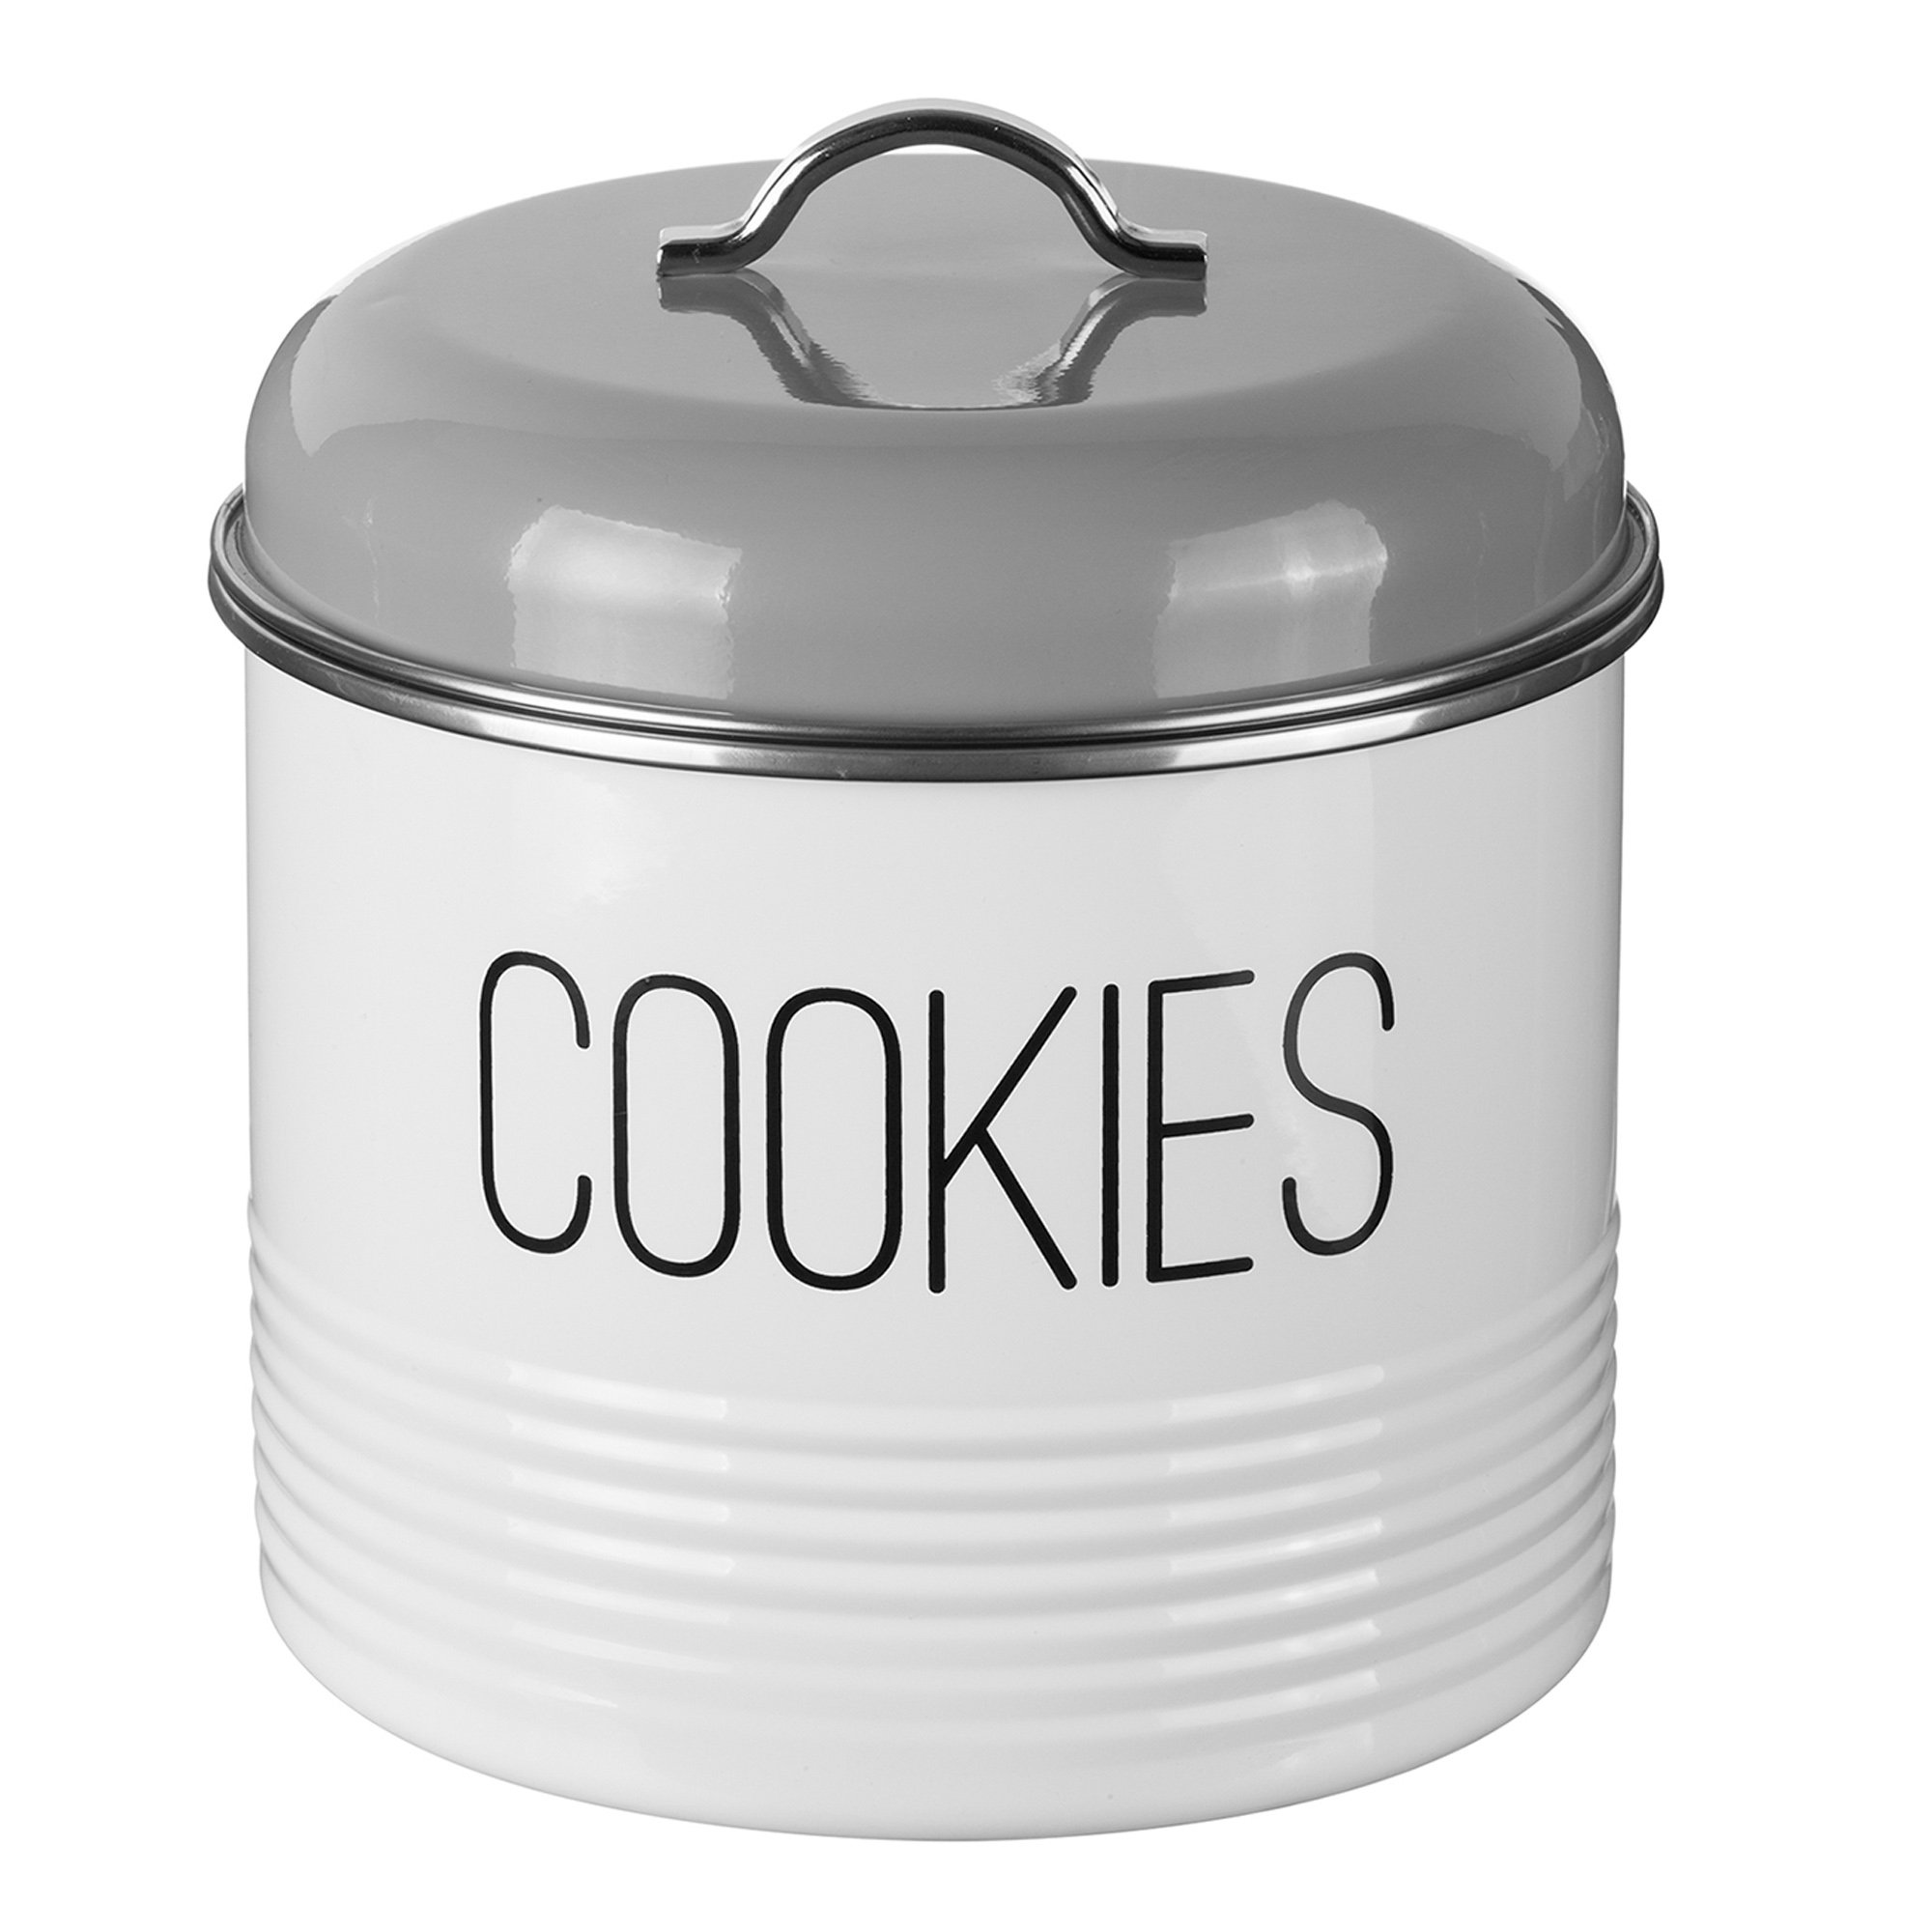 Typhoon Vintage Mayfair Coated Steel Cookie Storage Tin with Airtight Lid; Designed To Store Plenty of Cookies; 7-Inches by 7-Inches; Gray and White